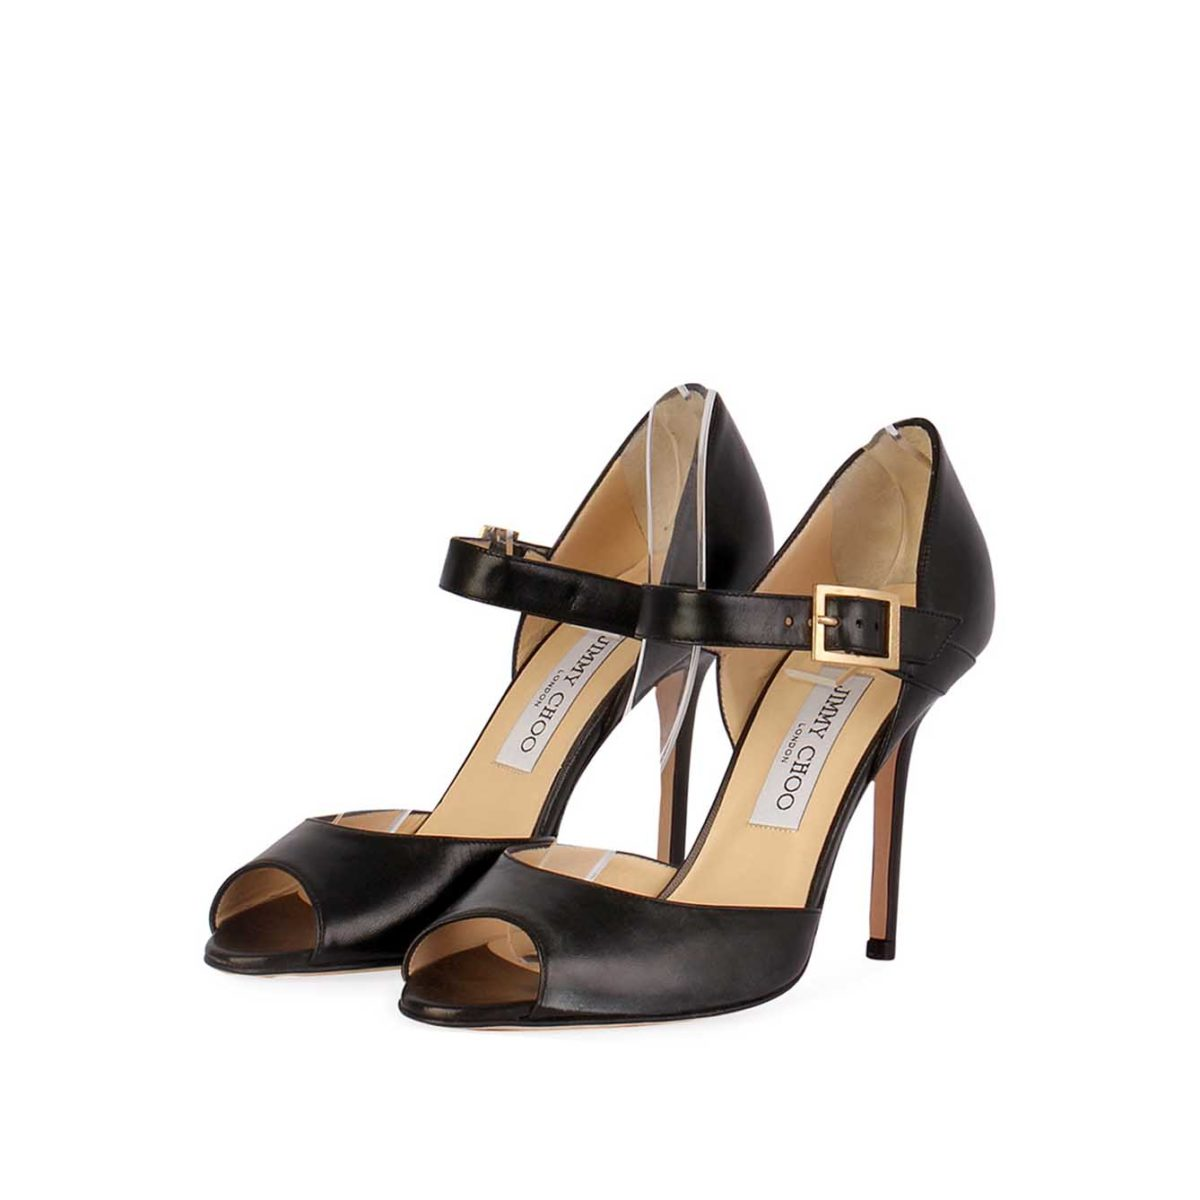 bc472efd5 JIMMY CHOO Leather Peep-Toe Heels with Strap Detail Black – S: 38 (5 ...